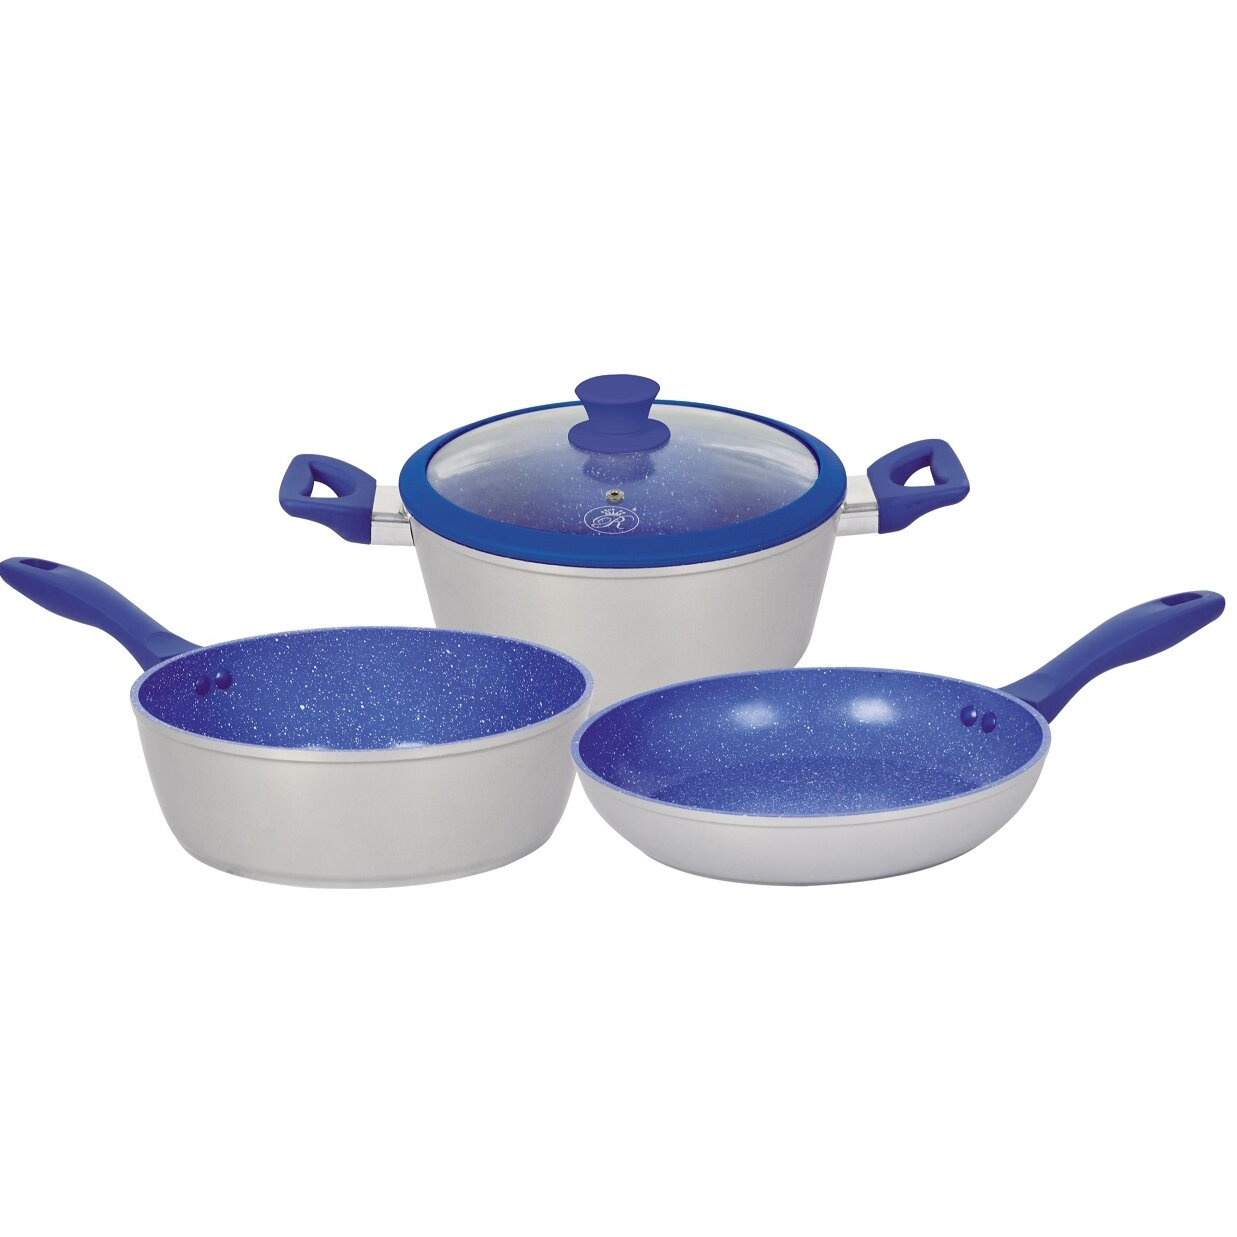 Royal cook 4 piece non stick cookware set wayfair for Kitchen set royal